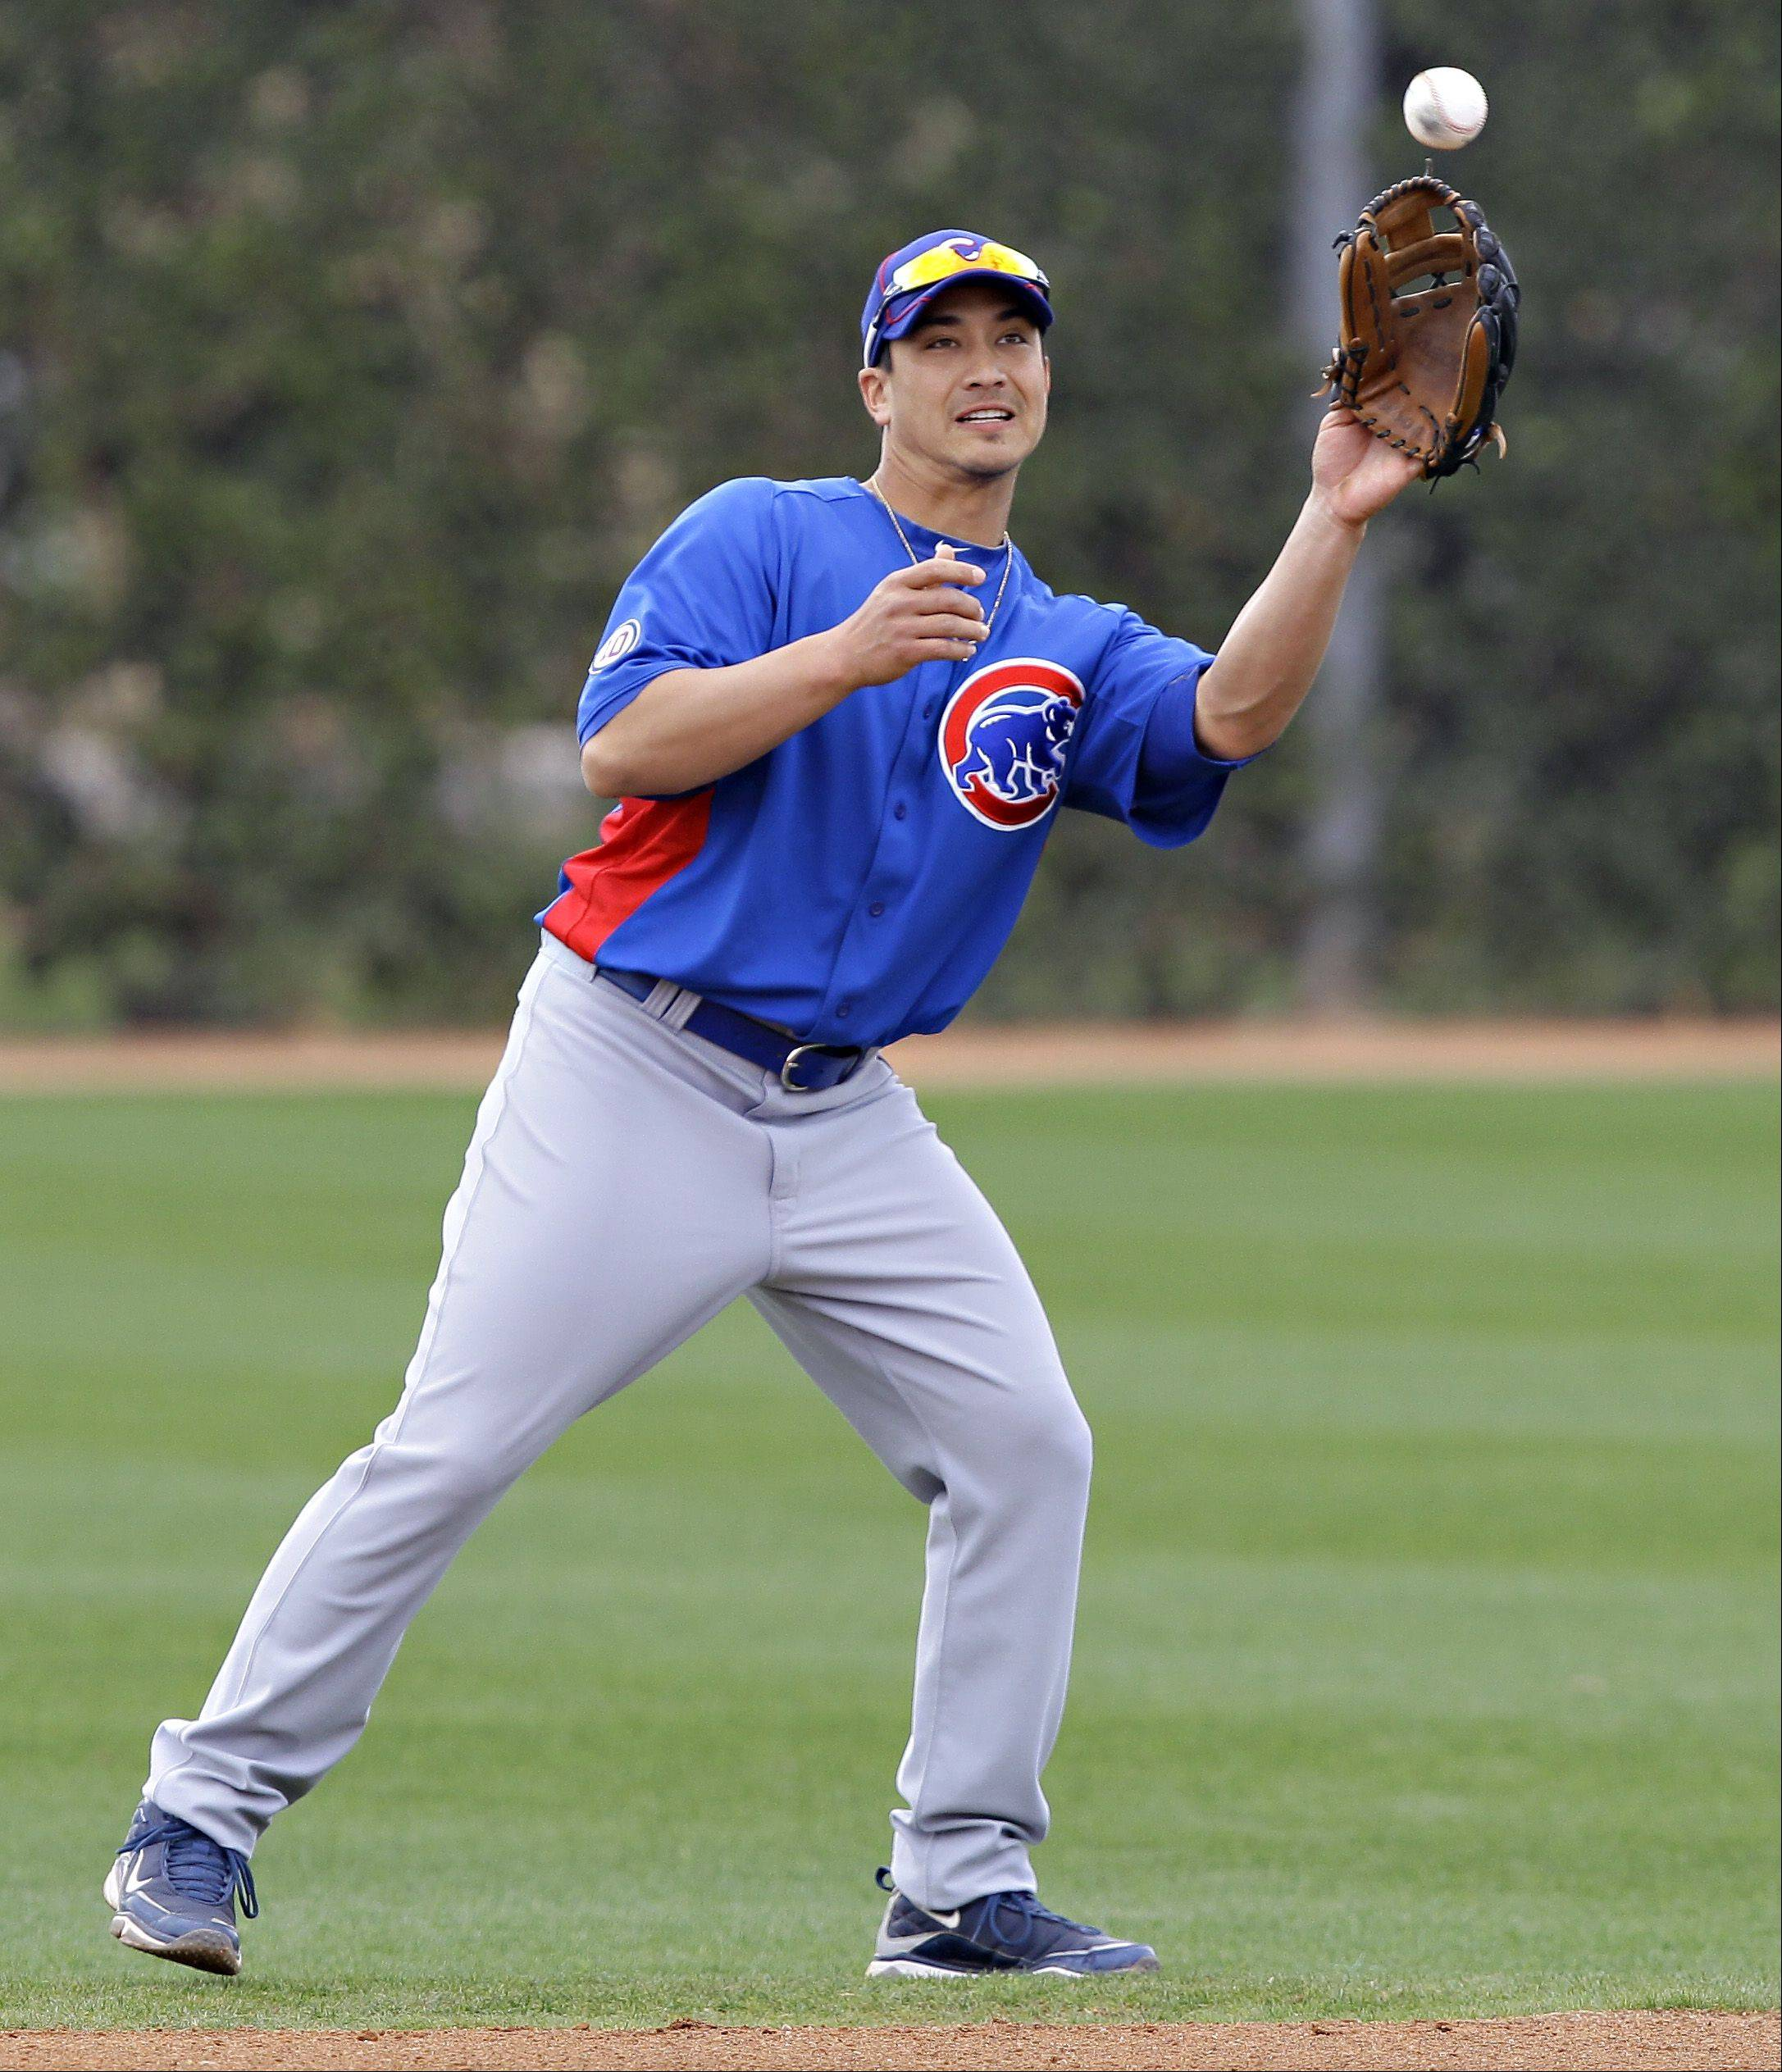 Chicago Cubs infielder Darwin Barney makes a catch during spring training baseball Friday, Feb. 18, 2011 in Mesa, Ariz. (AP Photo/Matt York)